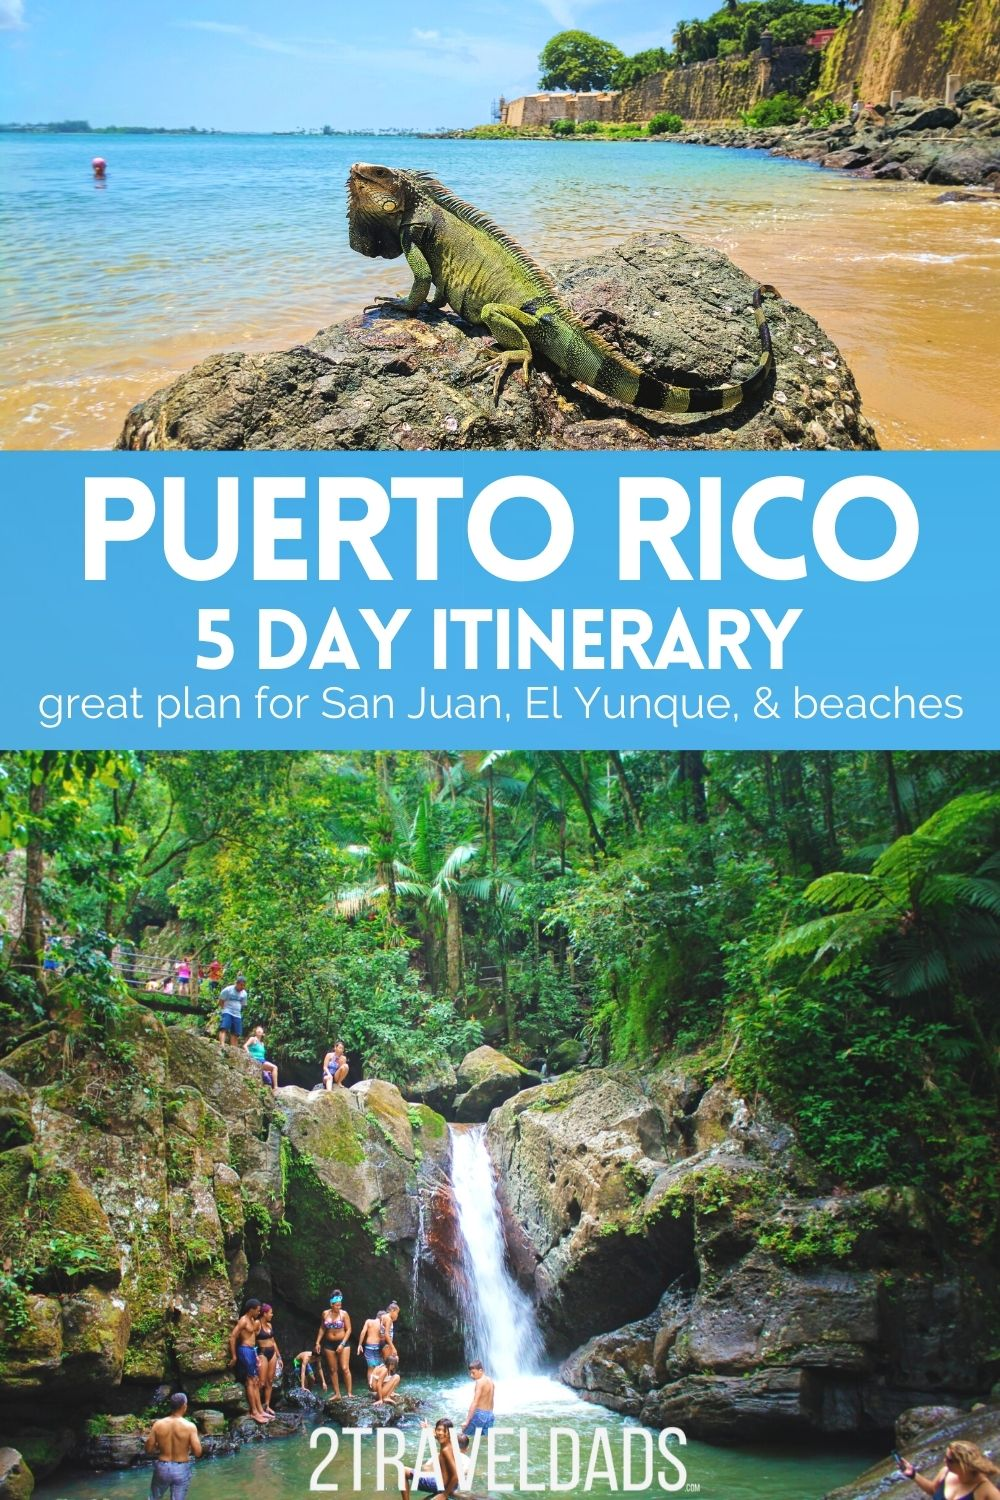 Perfect 5 day Puerto Rico itinerary for visiting Old San Juan, El Yunque National Rainforest and incredible beaches. Where to stay and things to do in Puerto Rico for an easy, amazing Caribbean trip